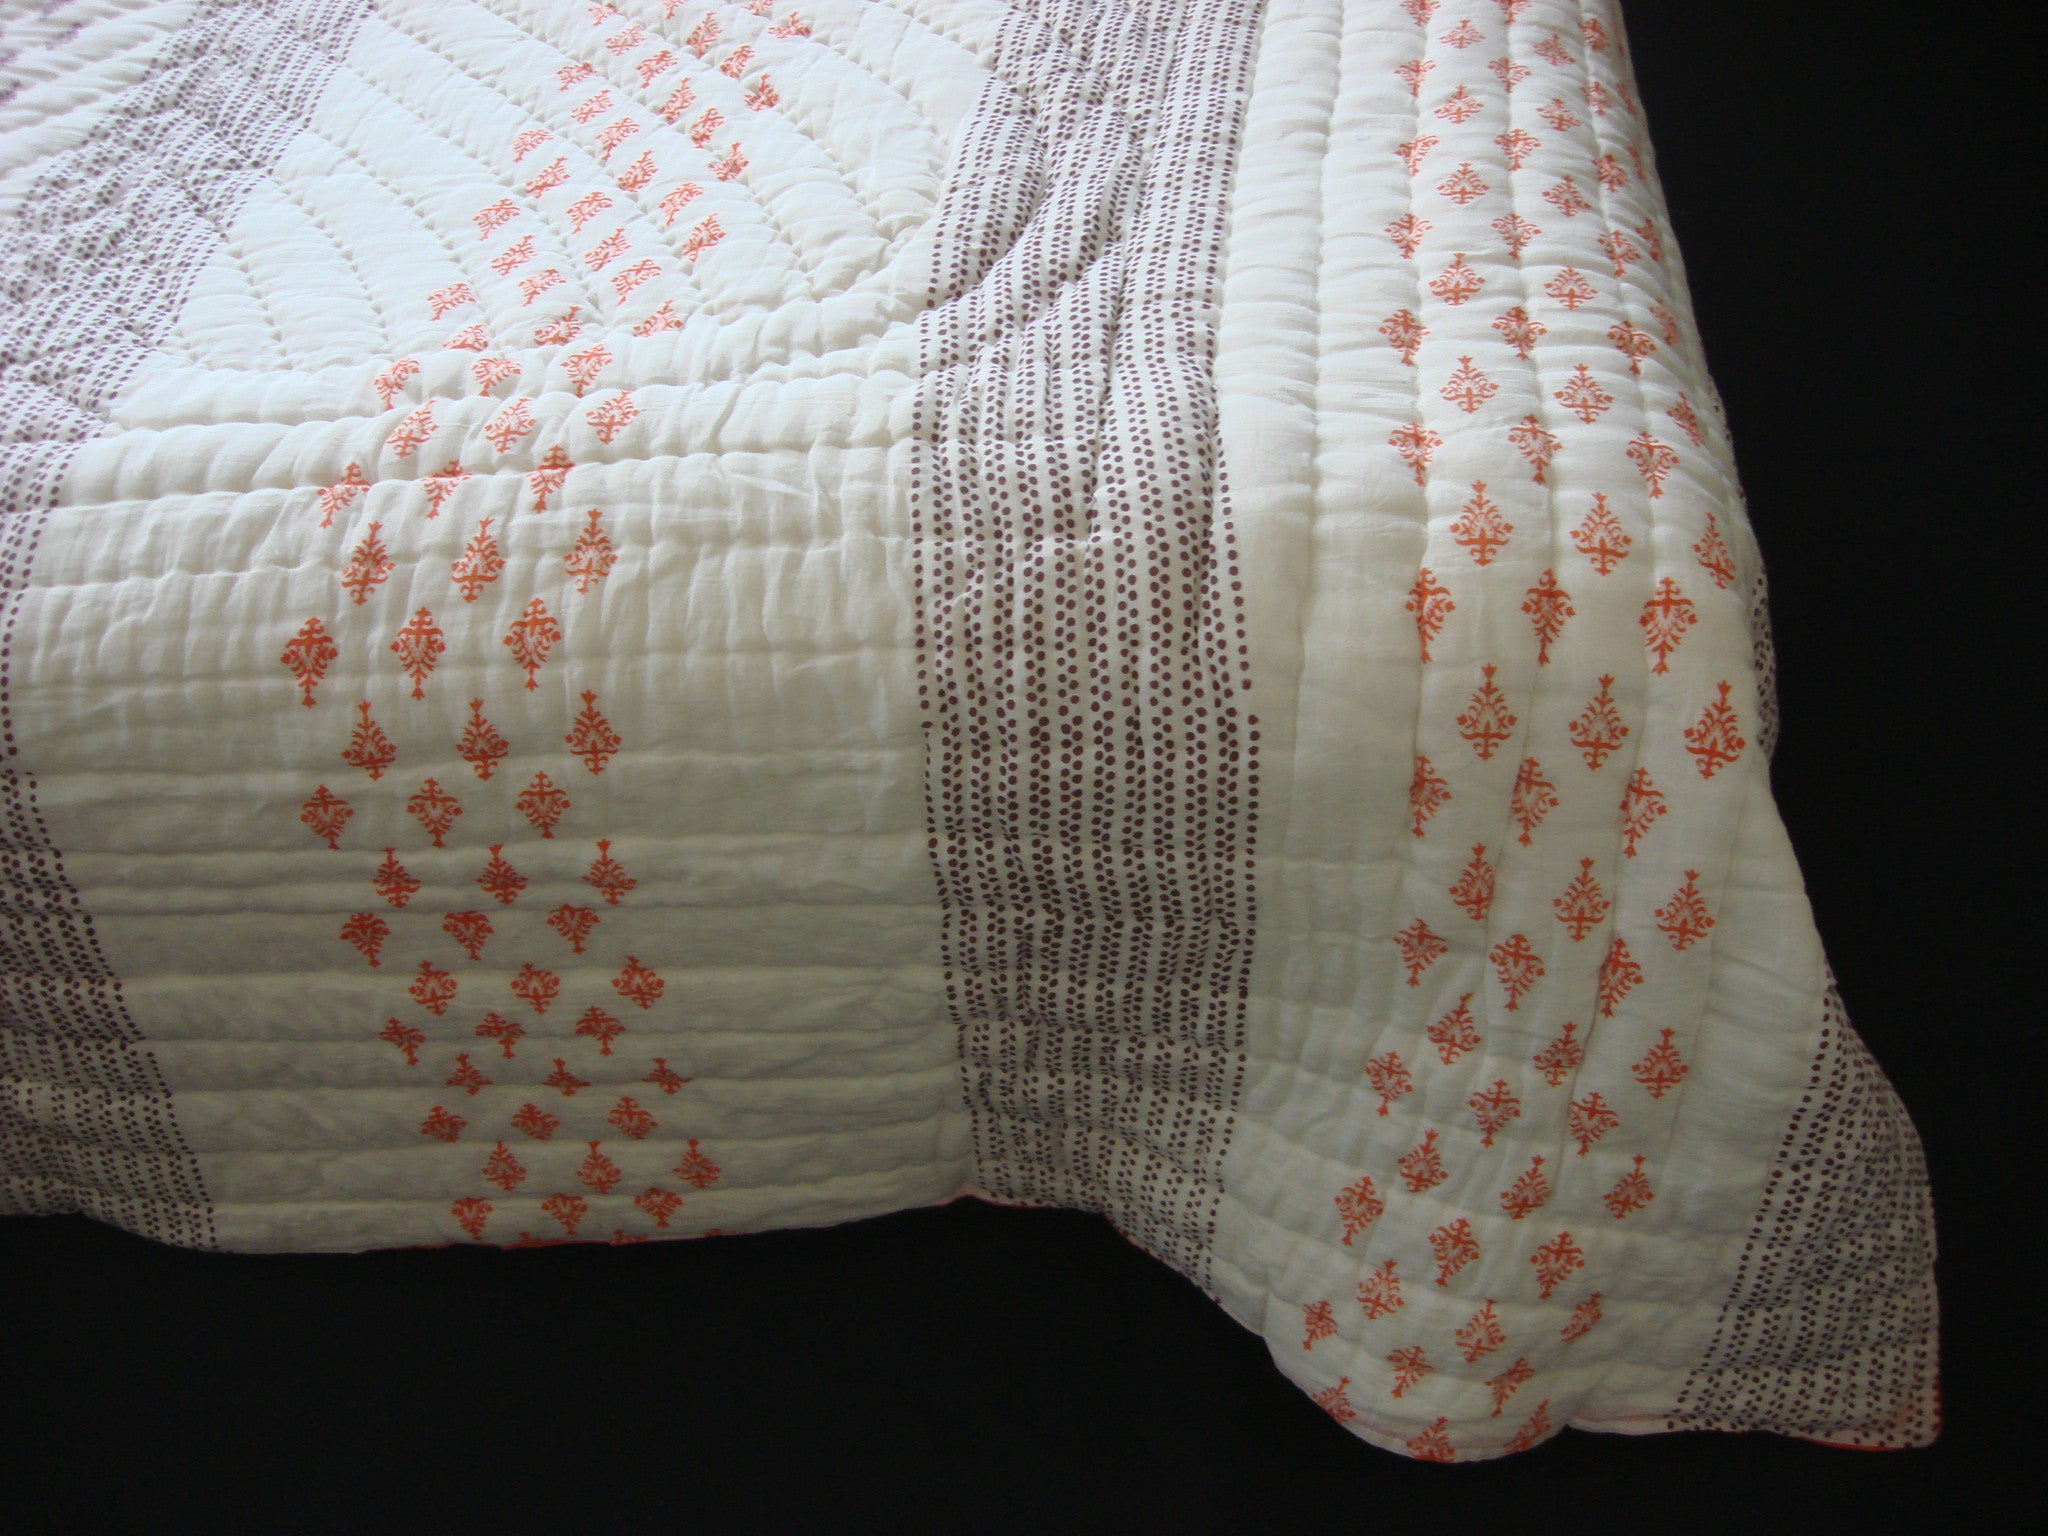 QBP 109 - Handmade, reversible, cotton, block printed quilt in sunny orange Egyptian design - Pentagon Crafts